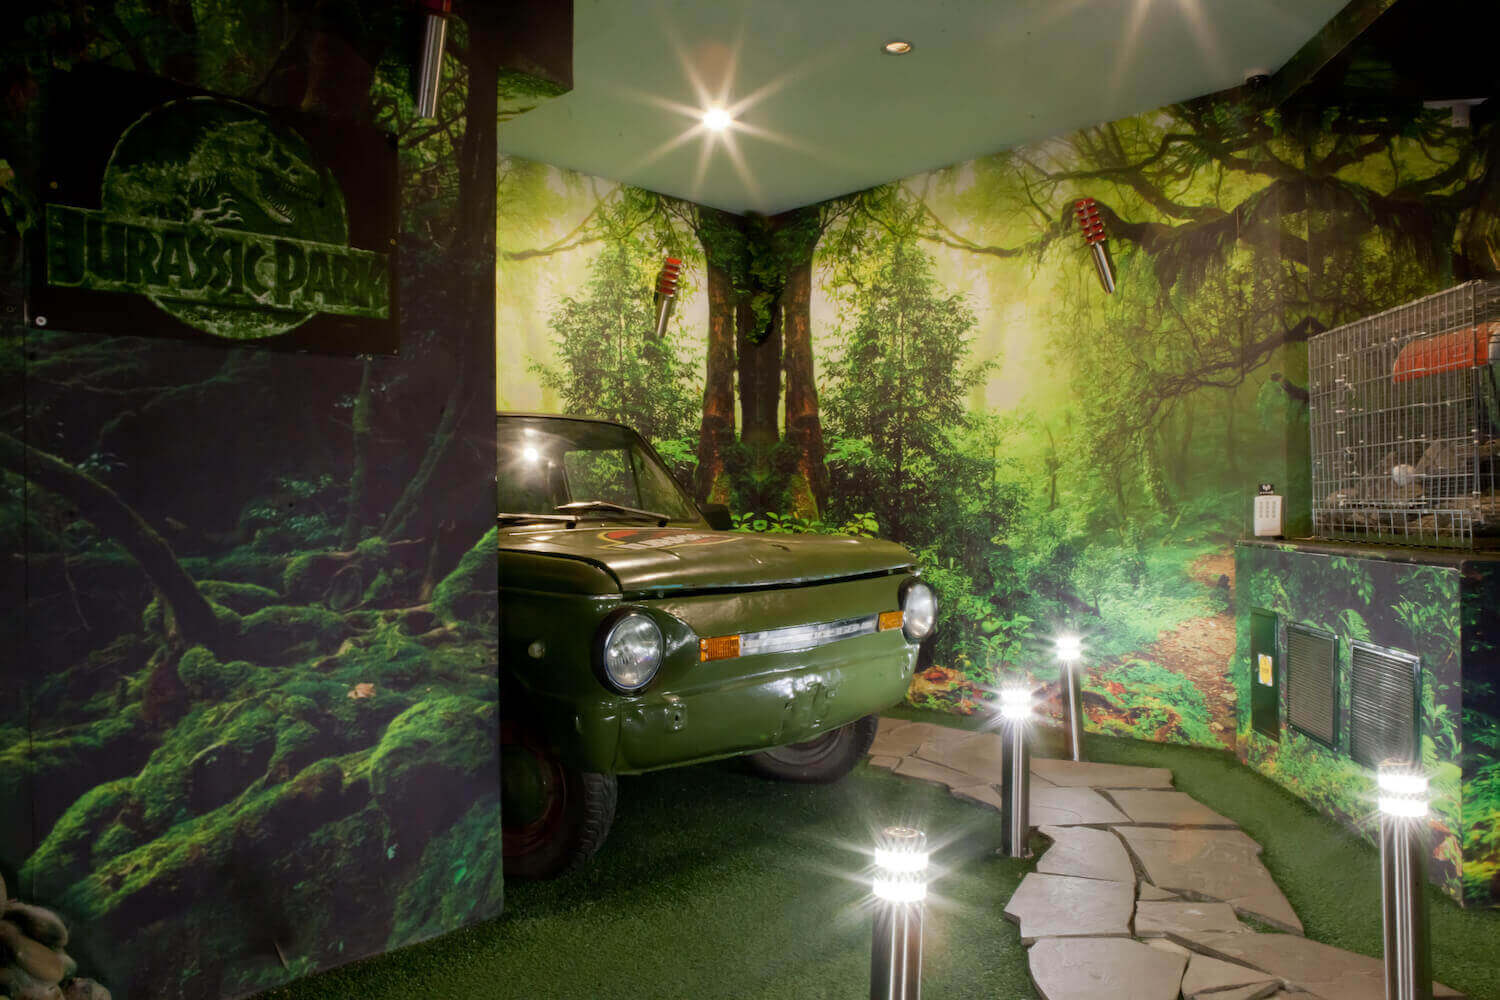 1 Photo quest room Jurassic Park in the city Kyiv